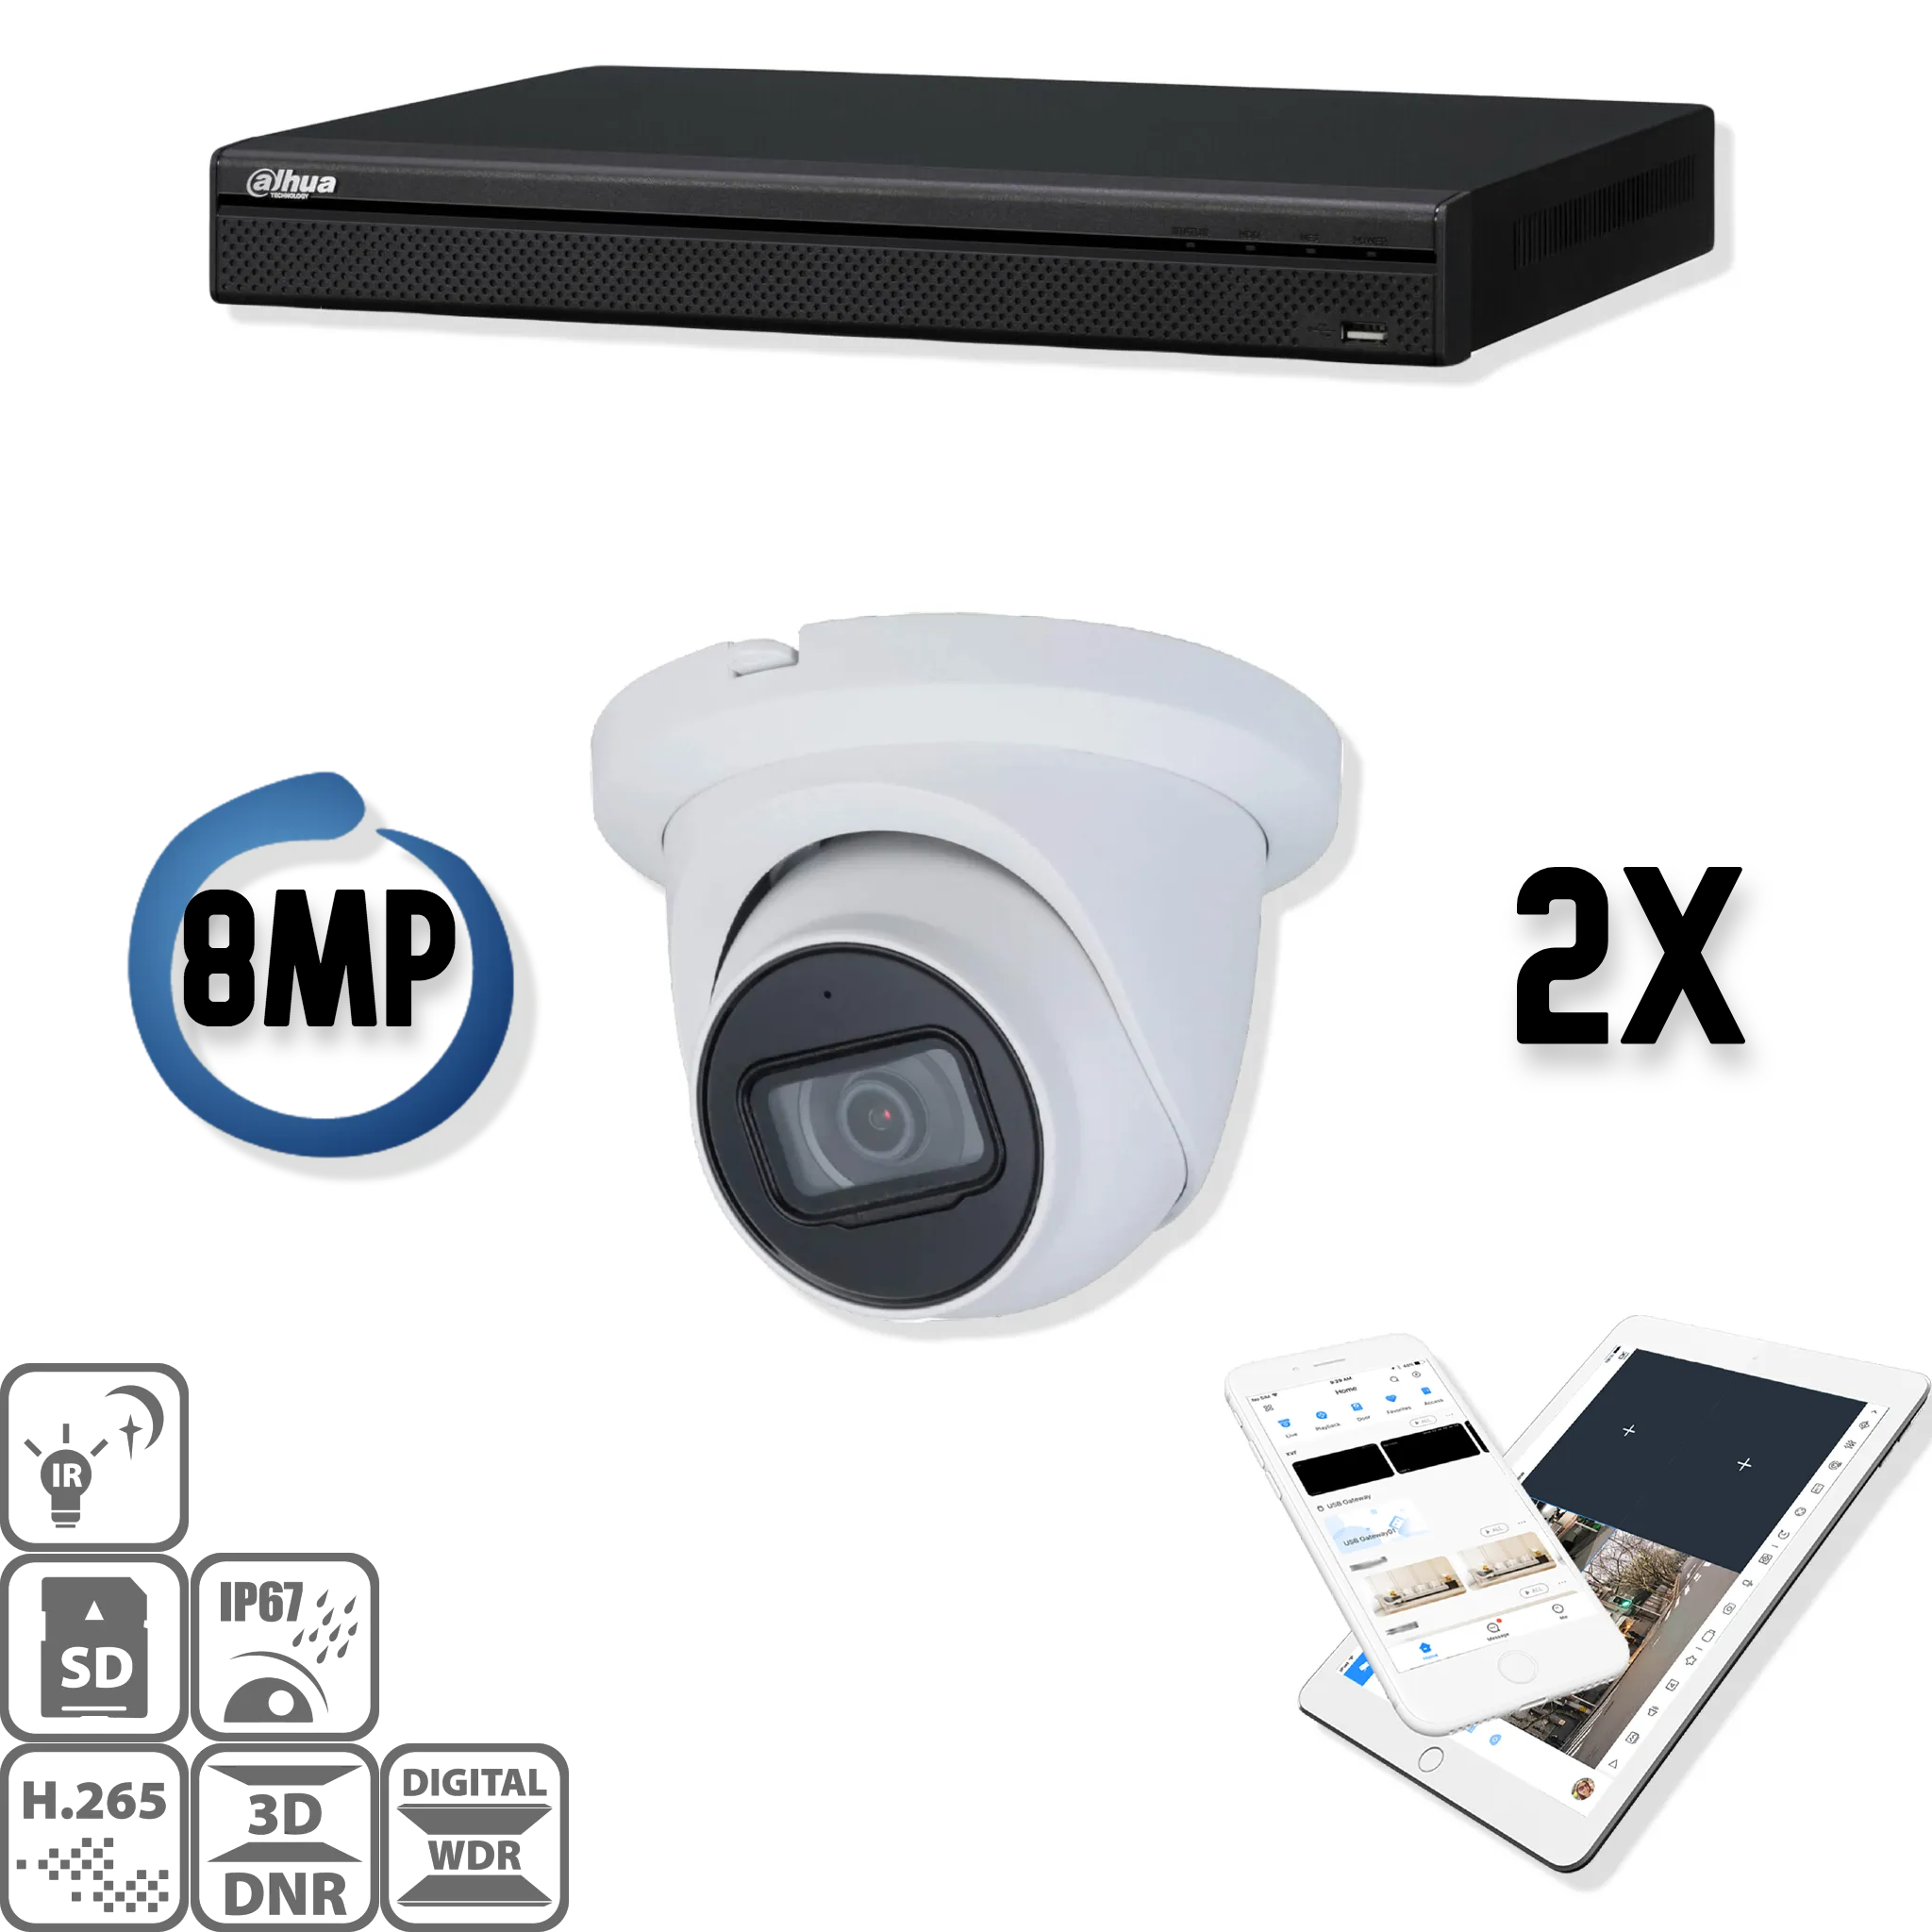 Ultra HD IP Kit 2x Eyeball 8 Megapixel Kamera Sicherheitsset